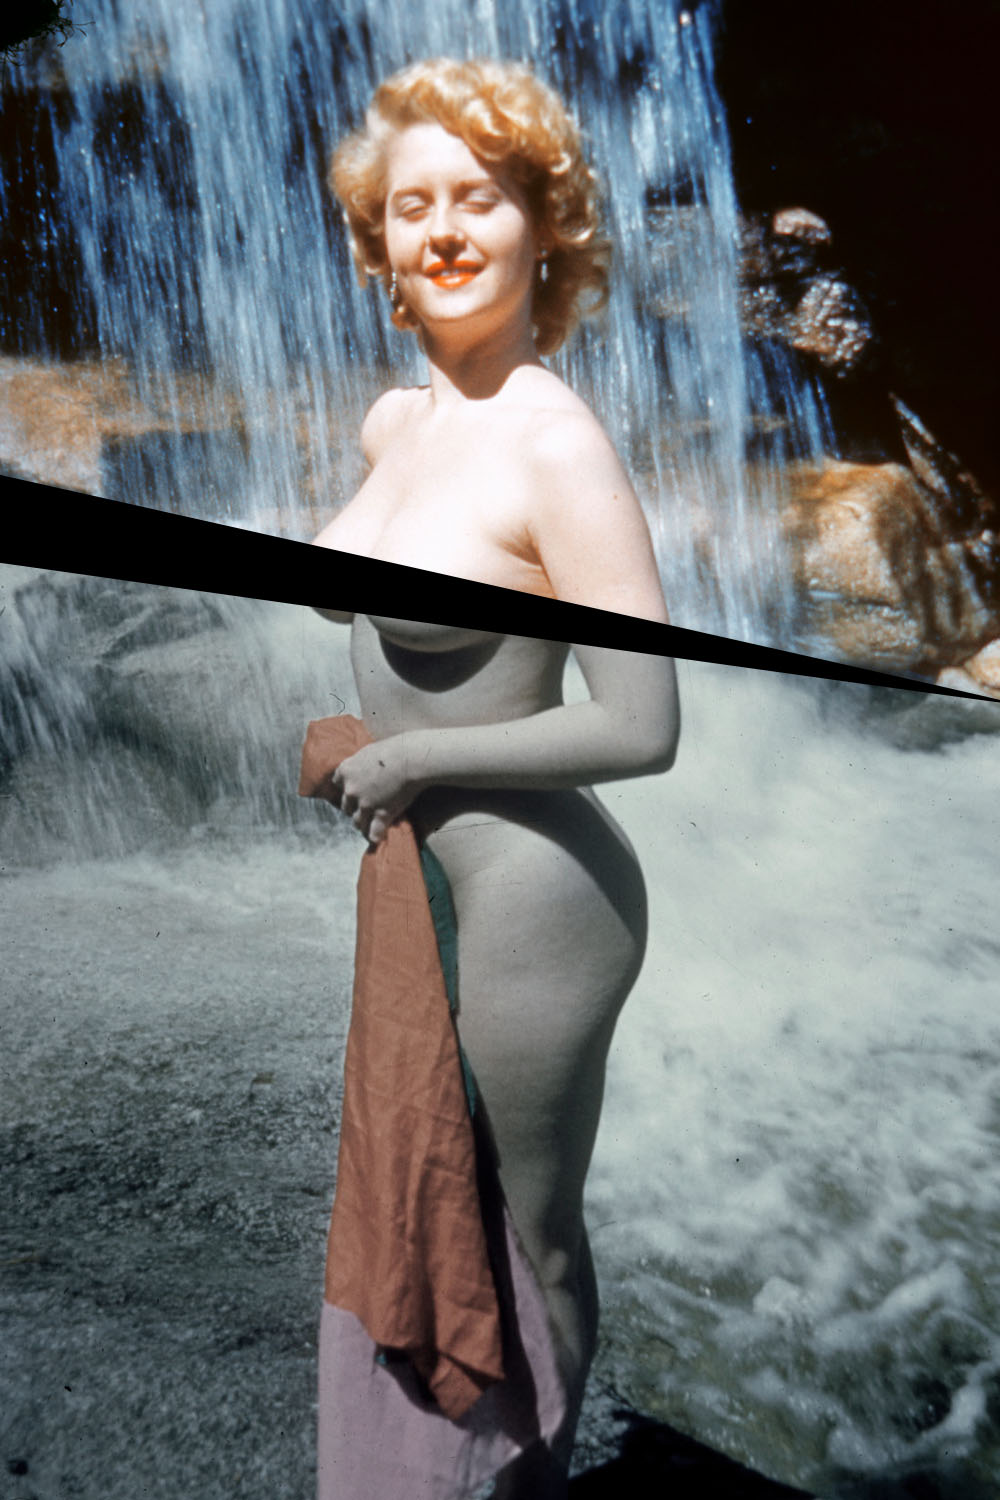 1950s-era woman of a naked woman in front of a waterfall.